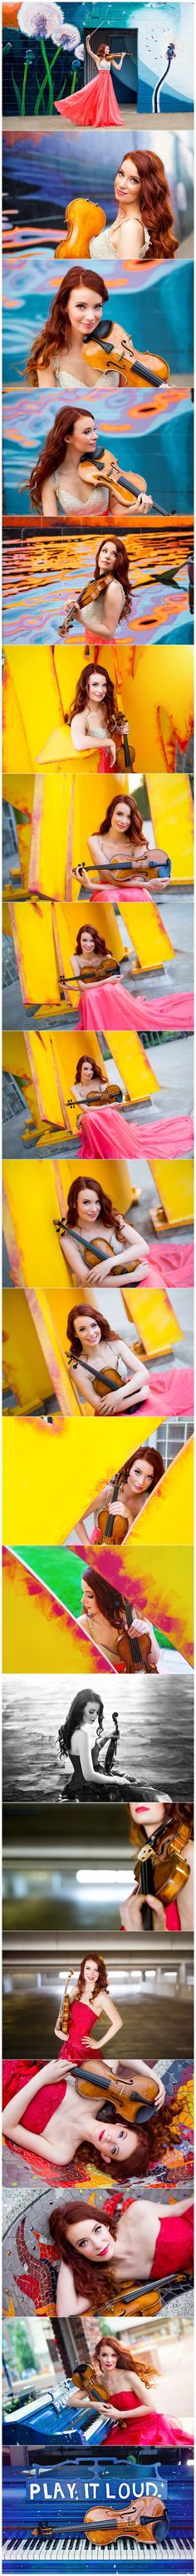 Chloé Trevor's violinist headshots, photographed by Boston headshot photographer Kate Lemmon. // www.kateLphotography.com